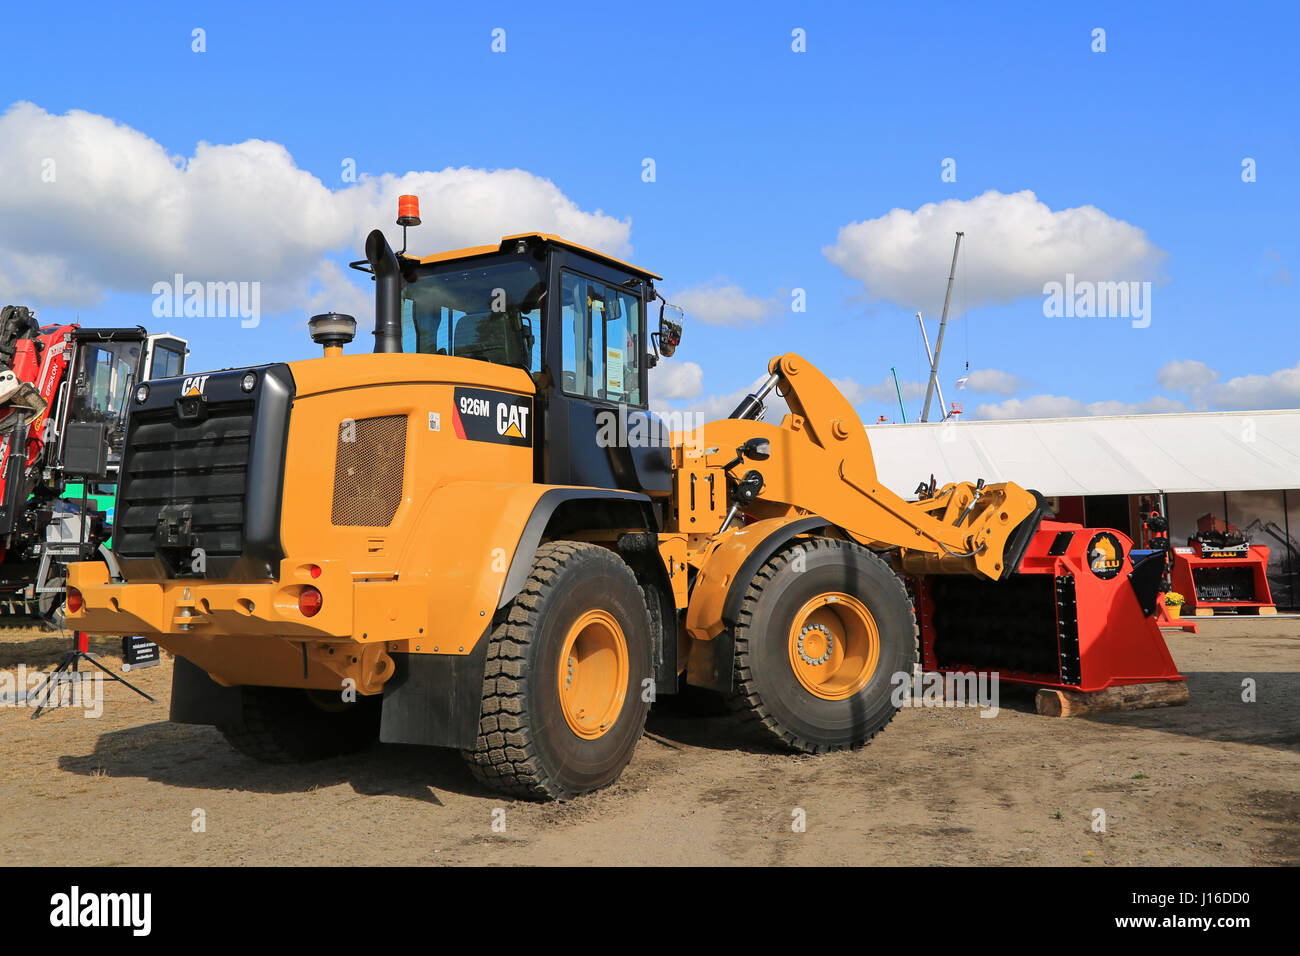 HYVINKAA, FINLAND - SEPTEMBER 11, 2015: Cat 926M medium size wheel loader and ALLU Screener crusher attachment on - Stock Image